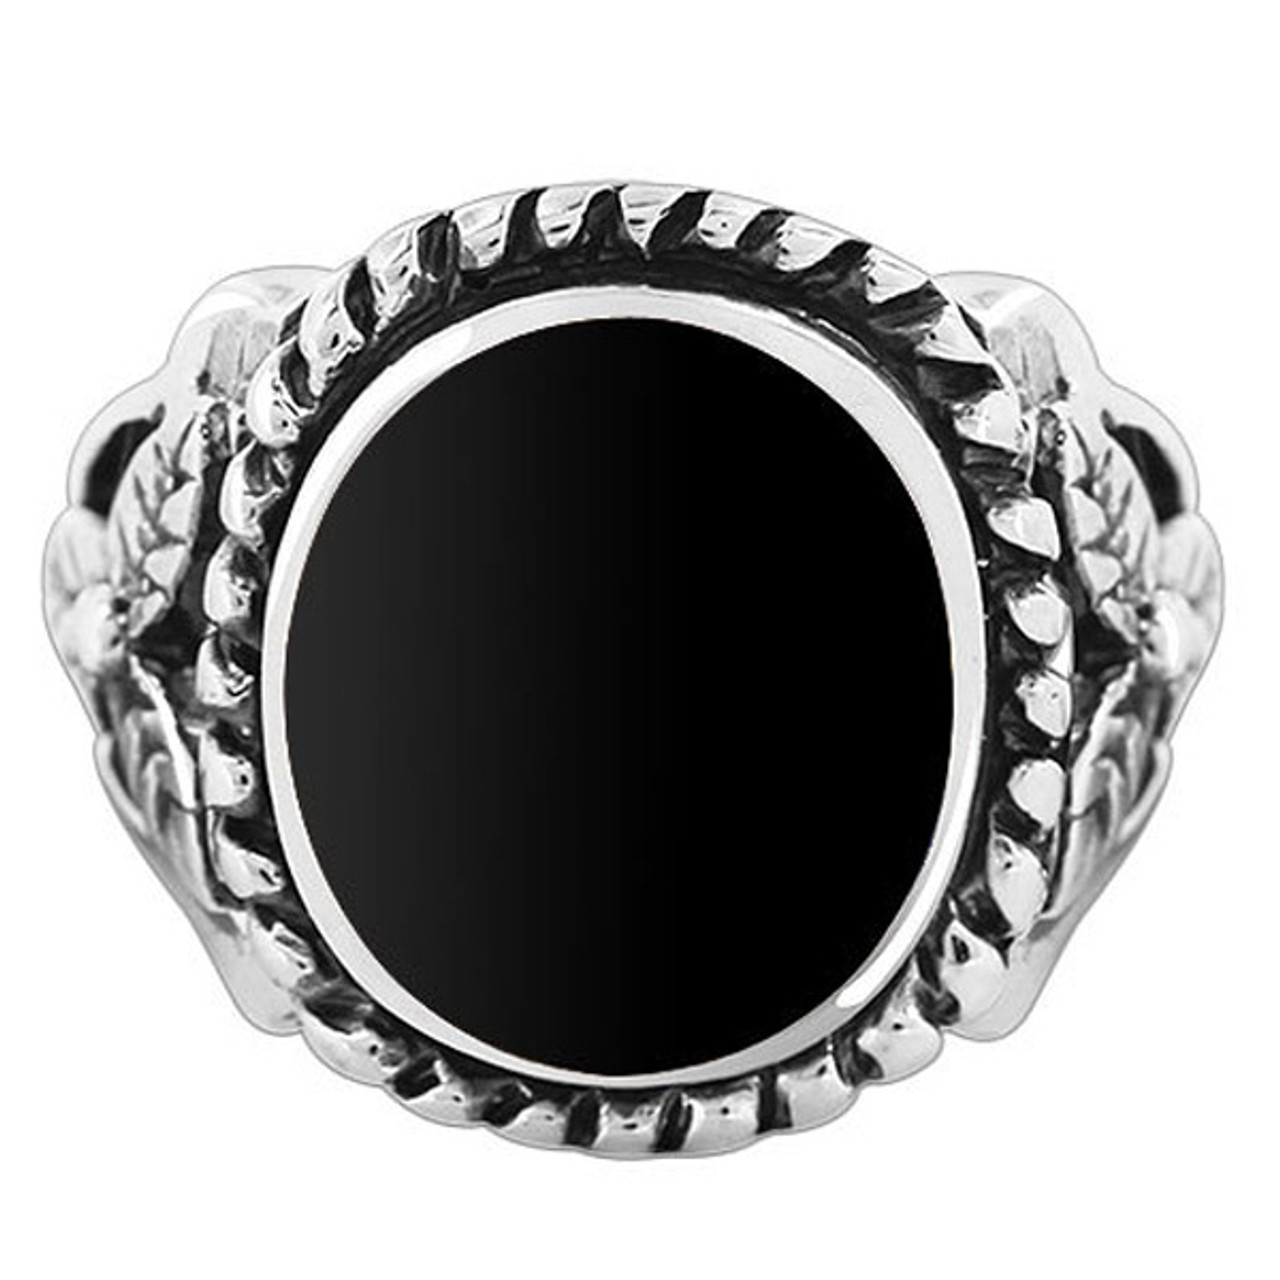 925 Sterling Silver Black Onyx Oval with 16mm Rope Design Ring